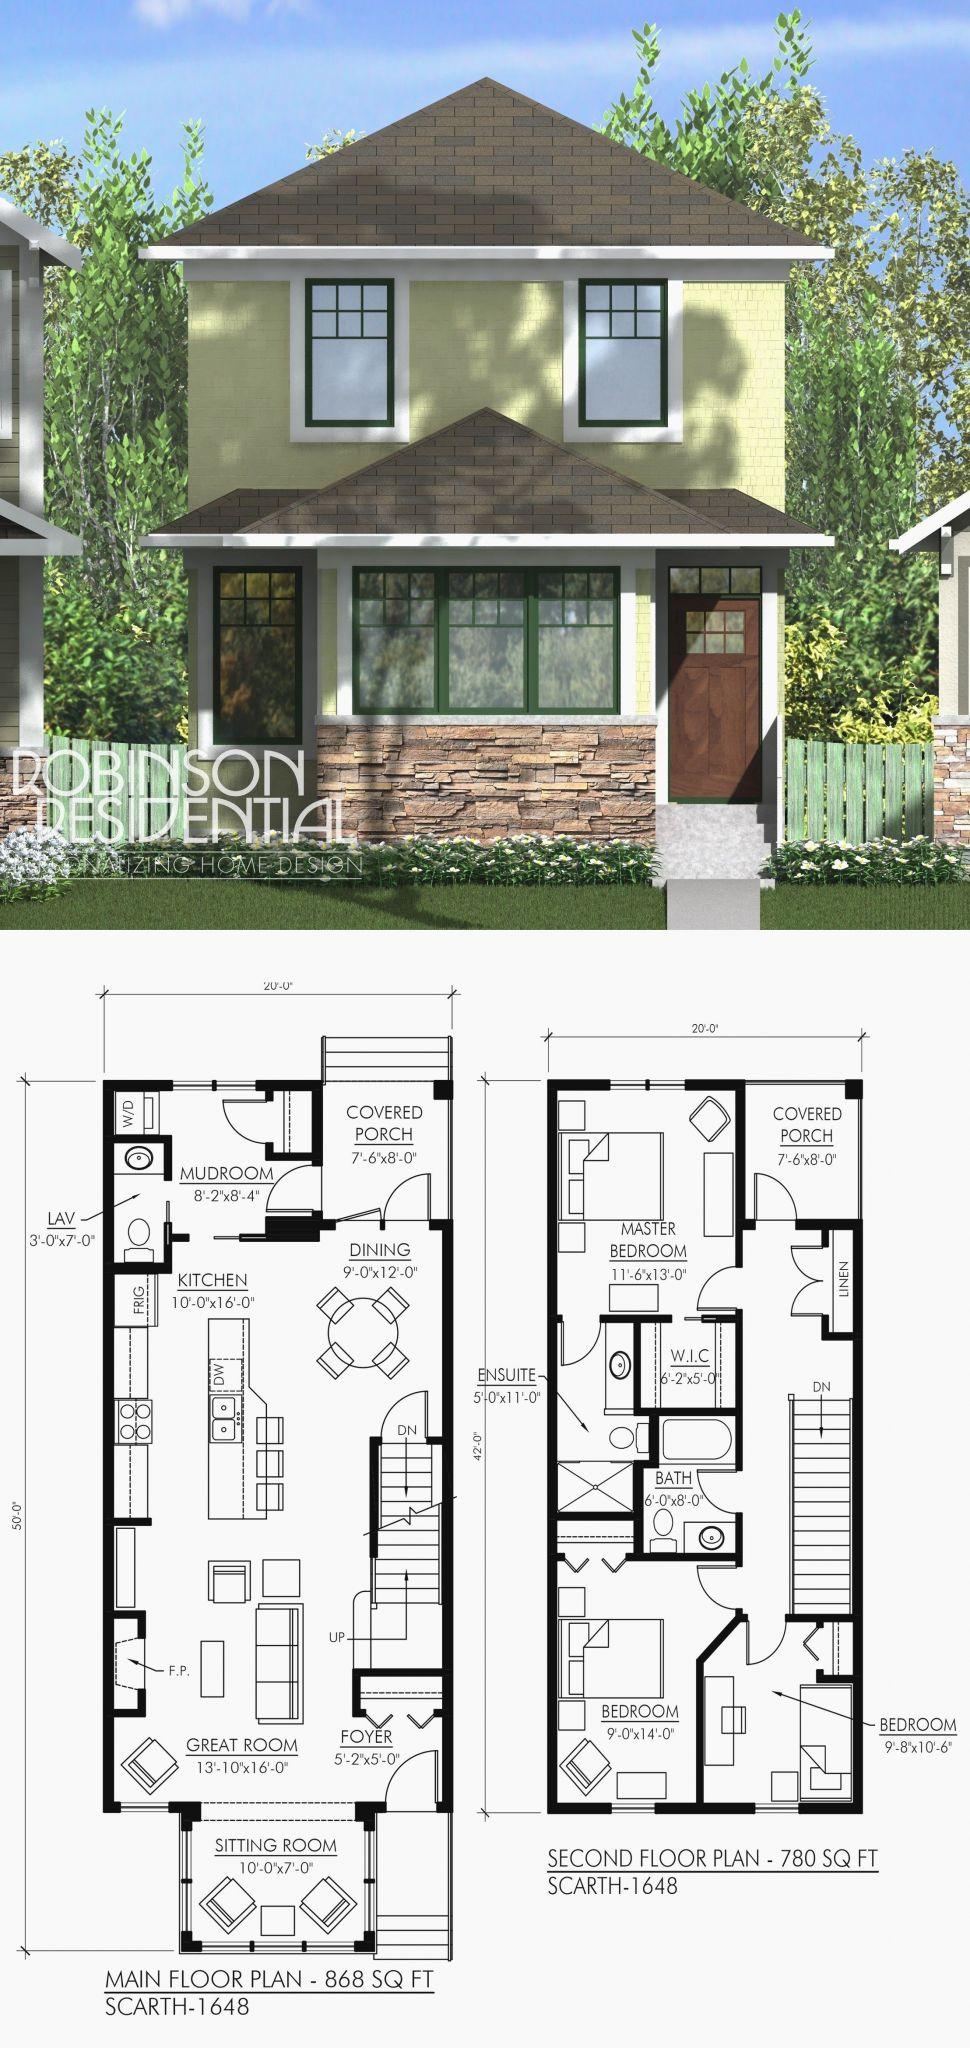 Best House Plans Of 2017 Luxury New House Plans 2017 Crafter Connection